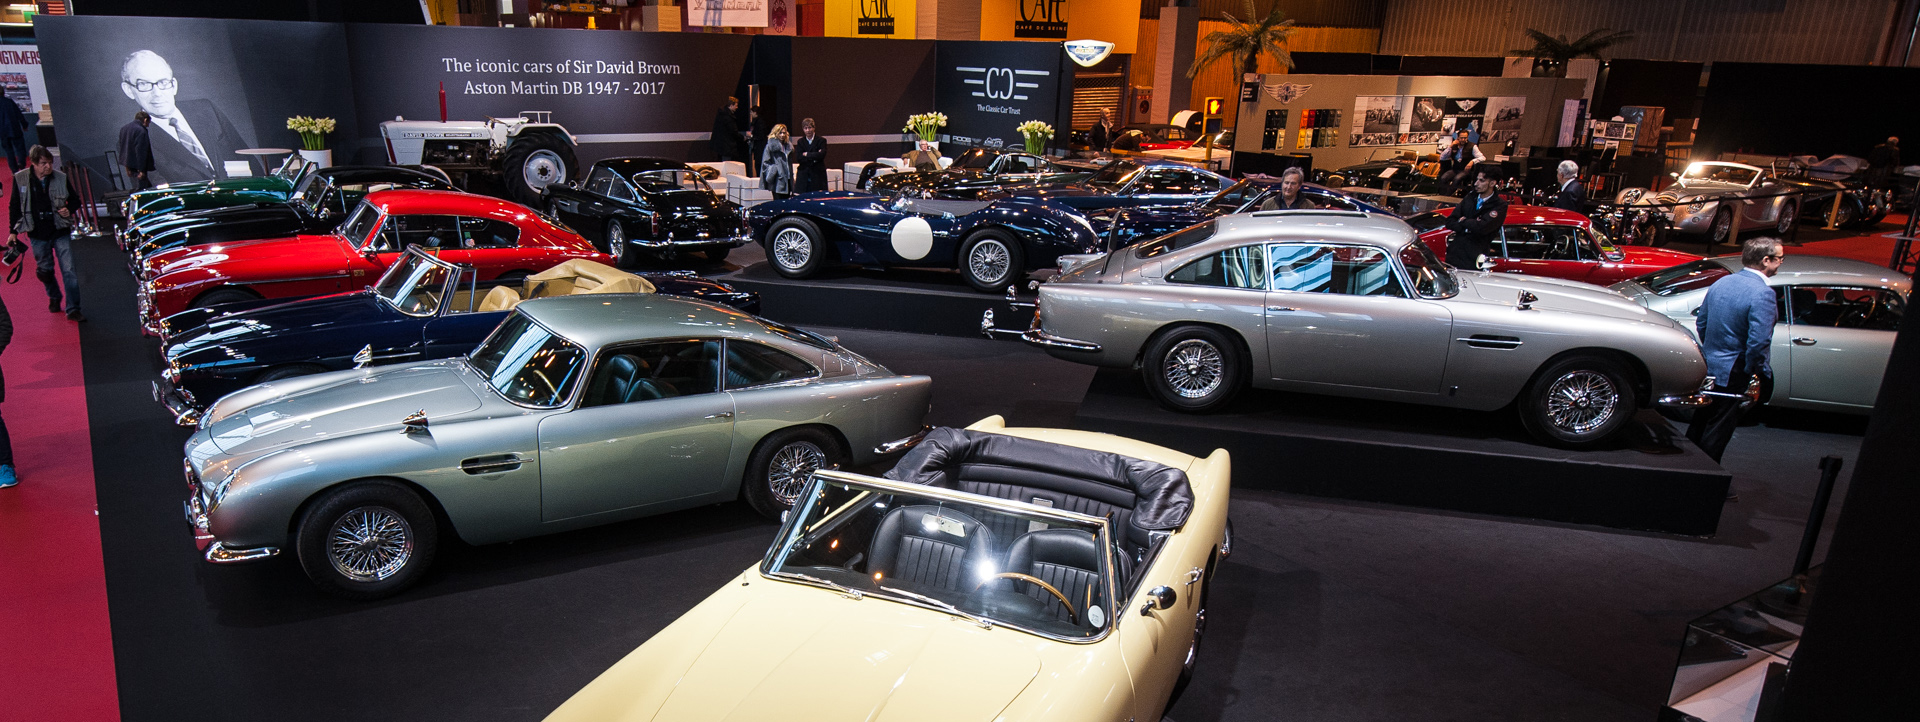 The Classic Car Trusts DB Cars Exhibition At Rétromobile - Classic cars 2017